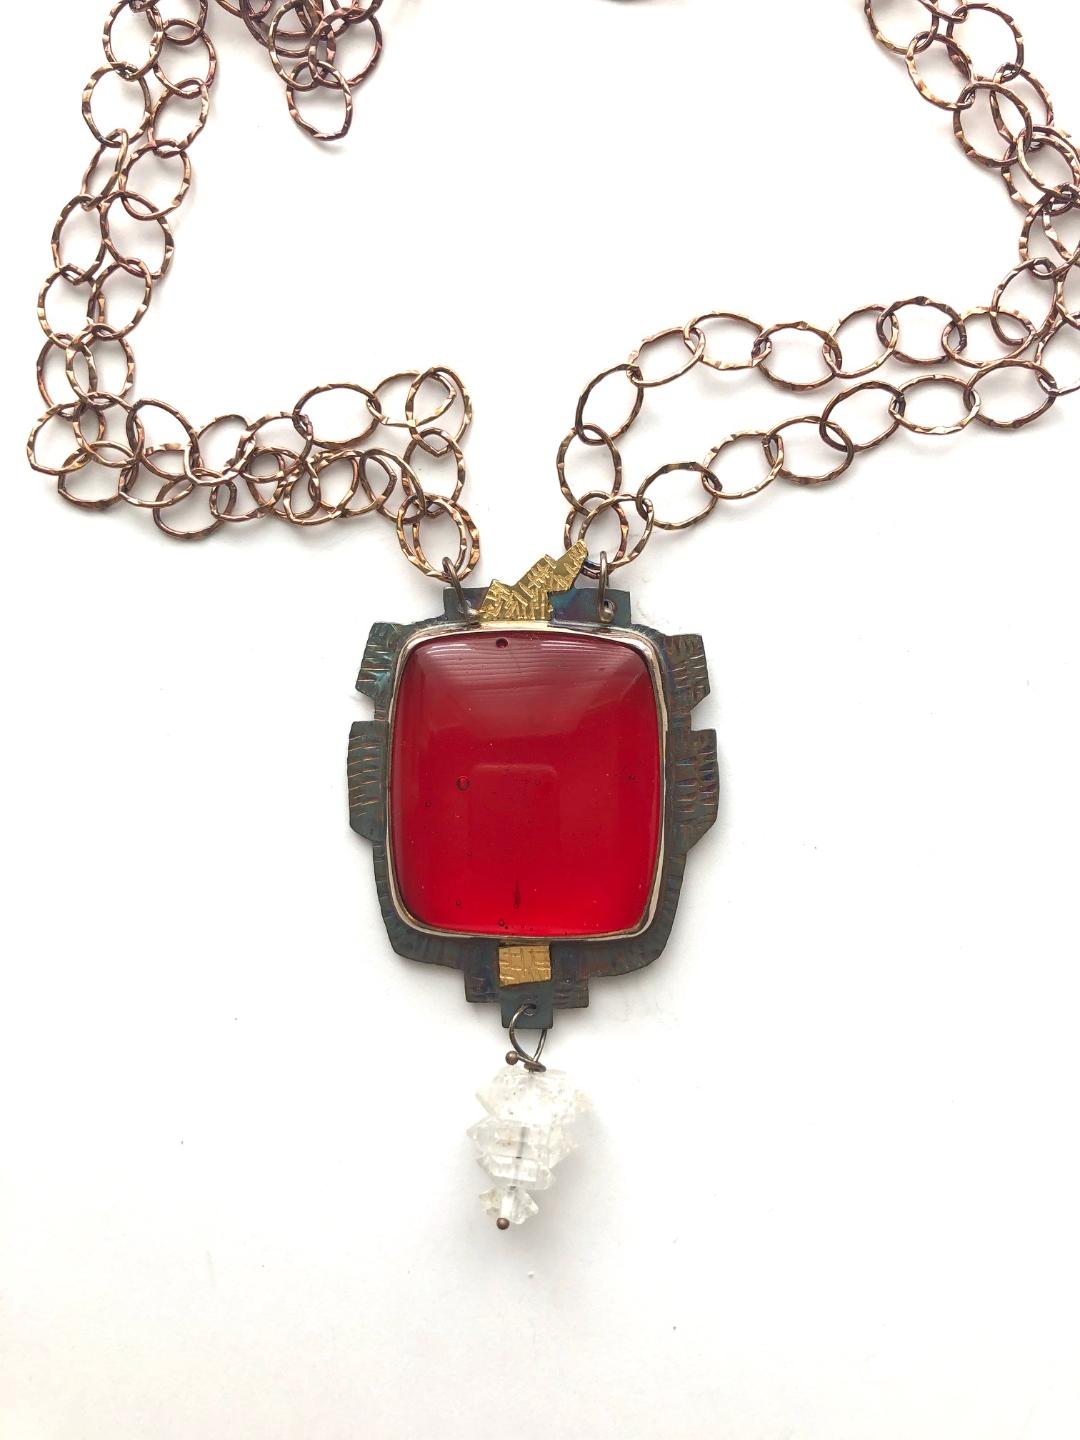 Rosa Rita Glass with Herkimer Diamonds Necklace in 22k Gold and Sterling Silver